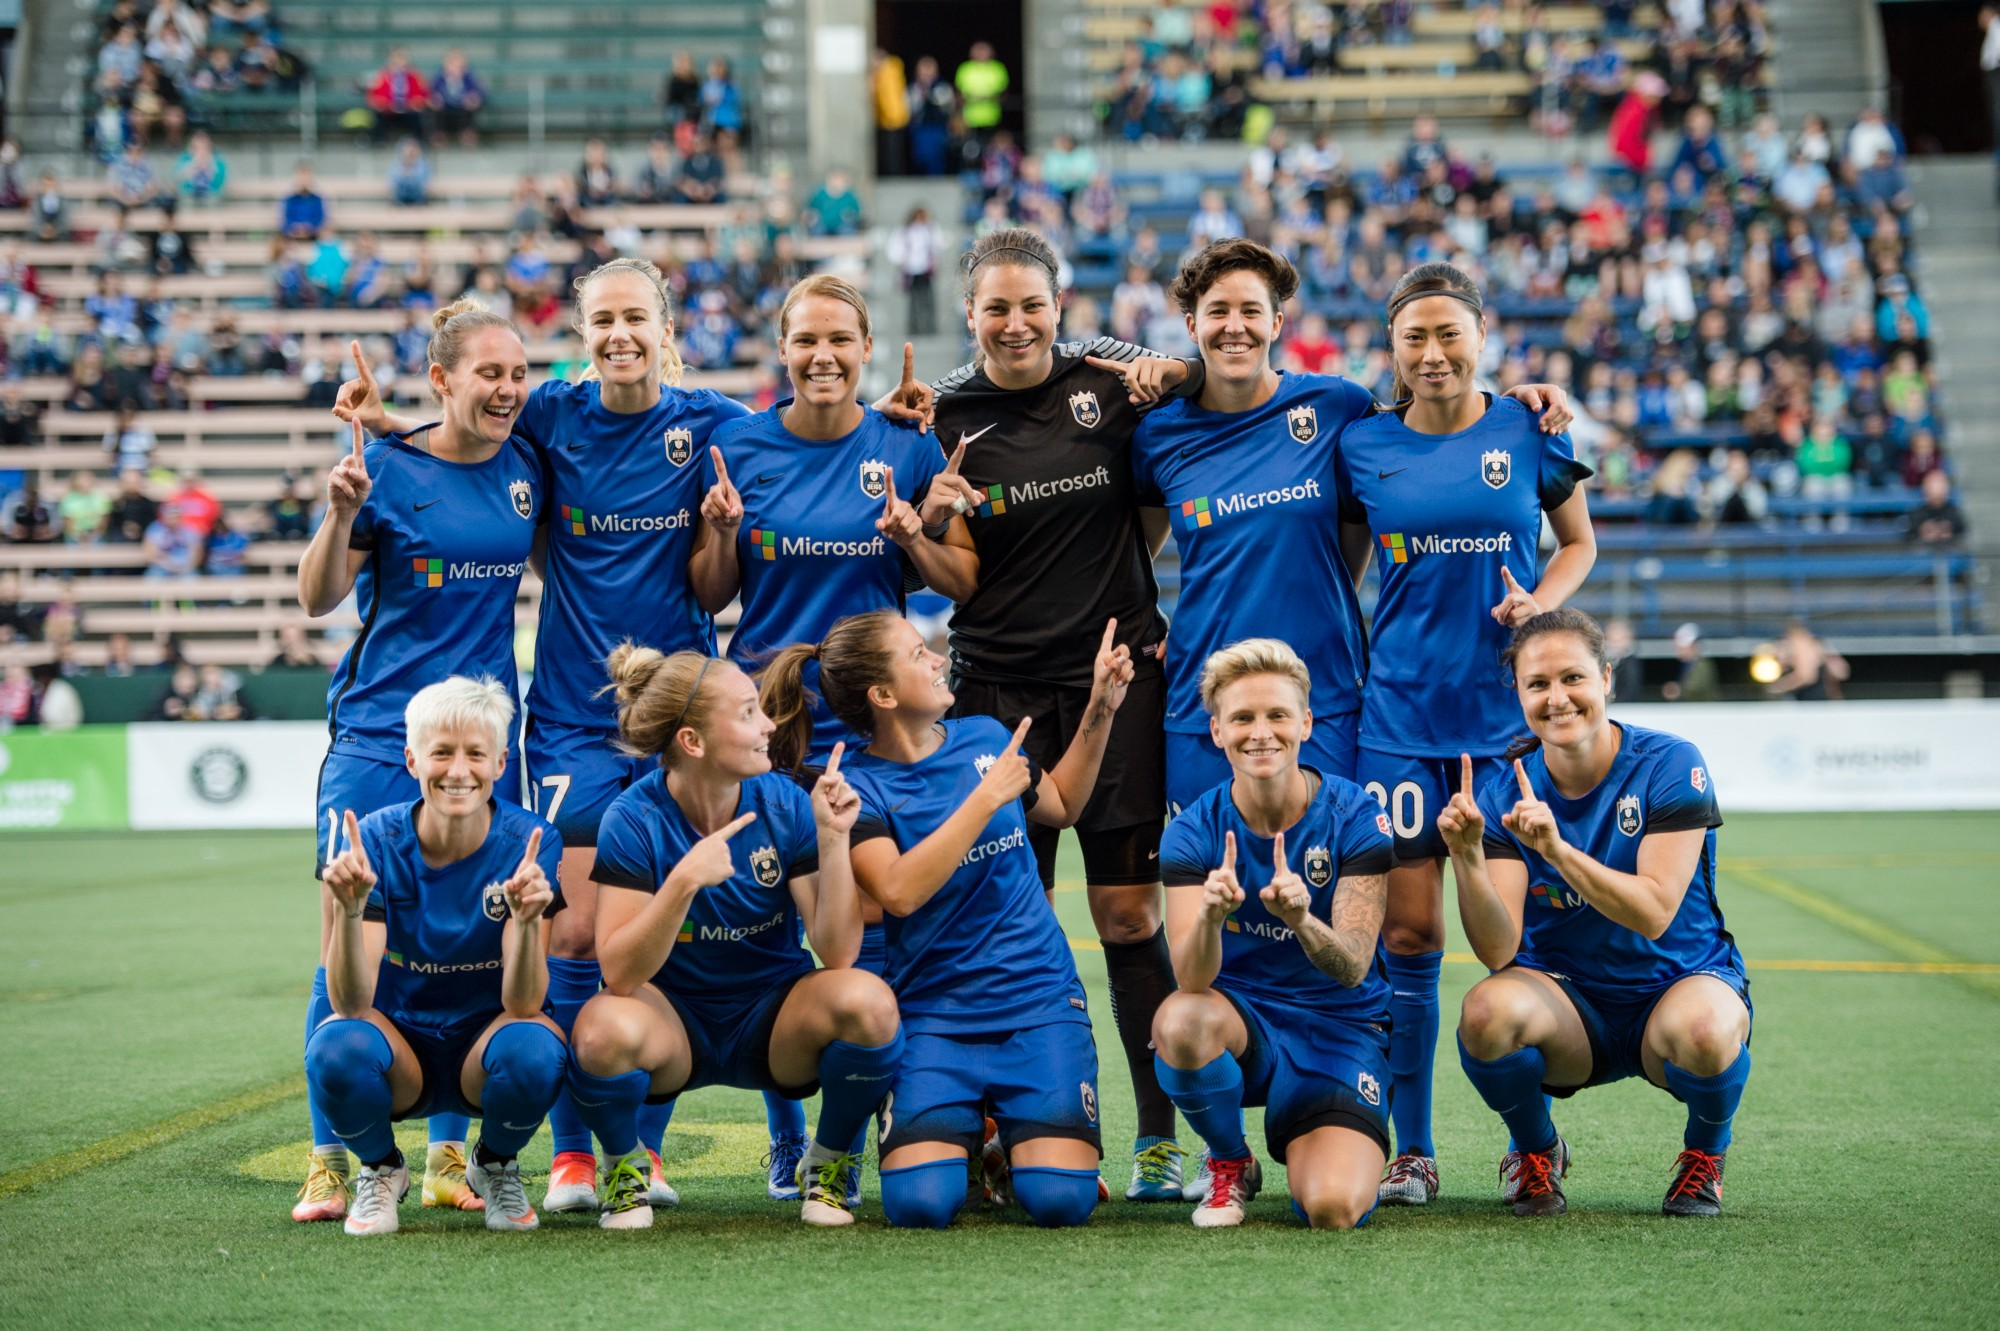 photo essay seattle reign fc 2 washington spirit 0 in front of a crowd of 4 711 fans at memorial stadium seattle reign fc shutout the washington spirit